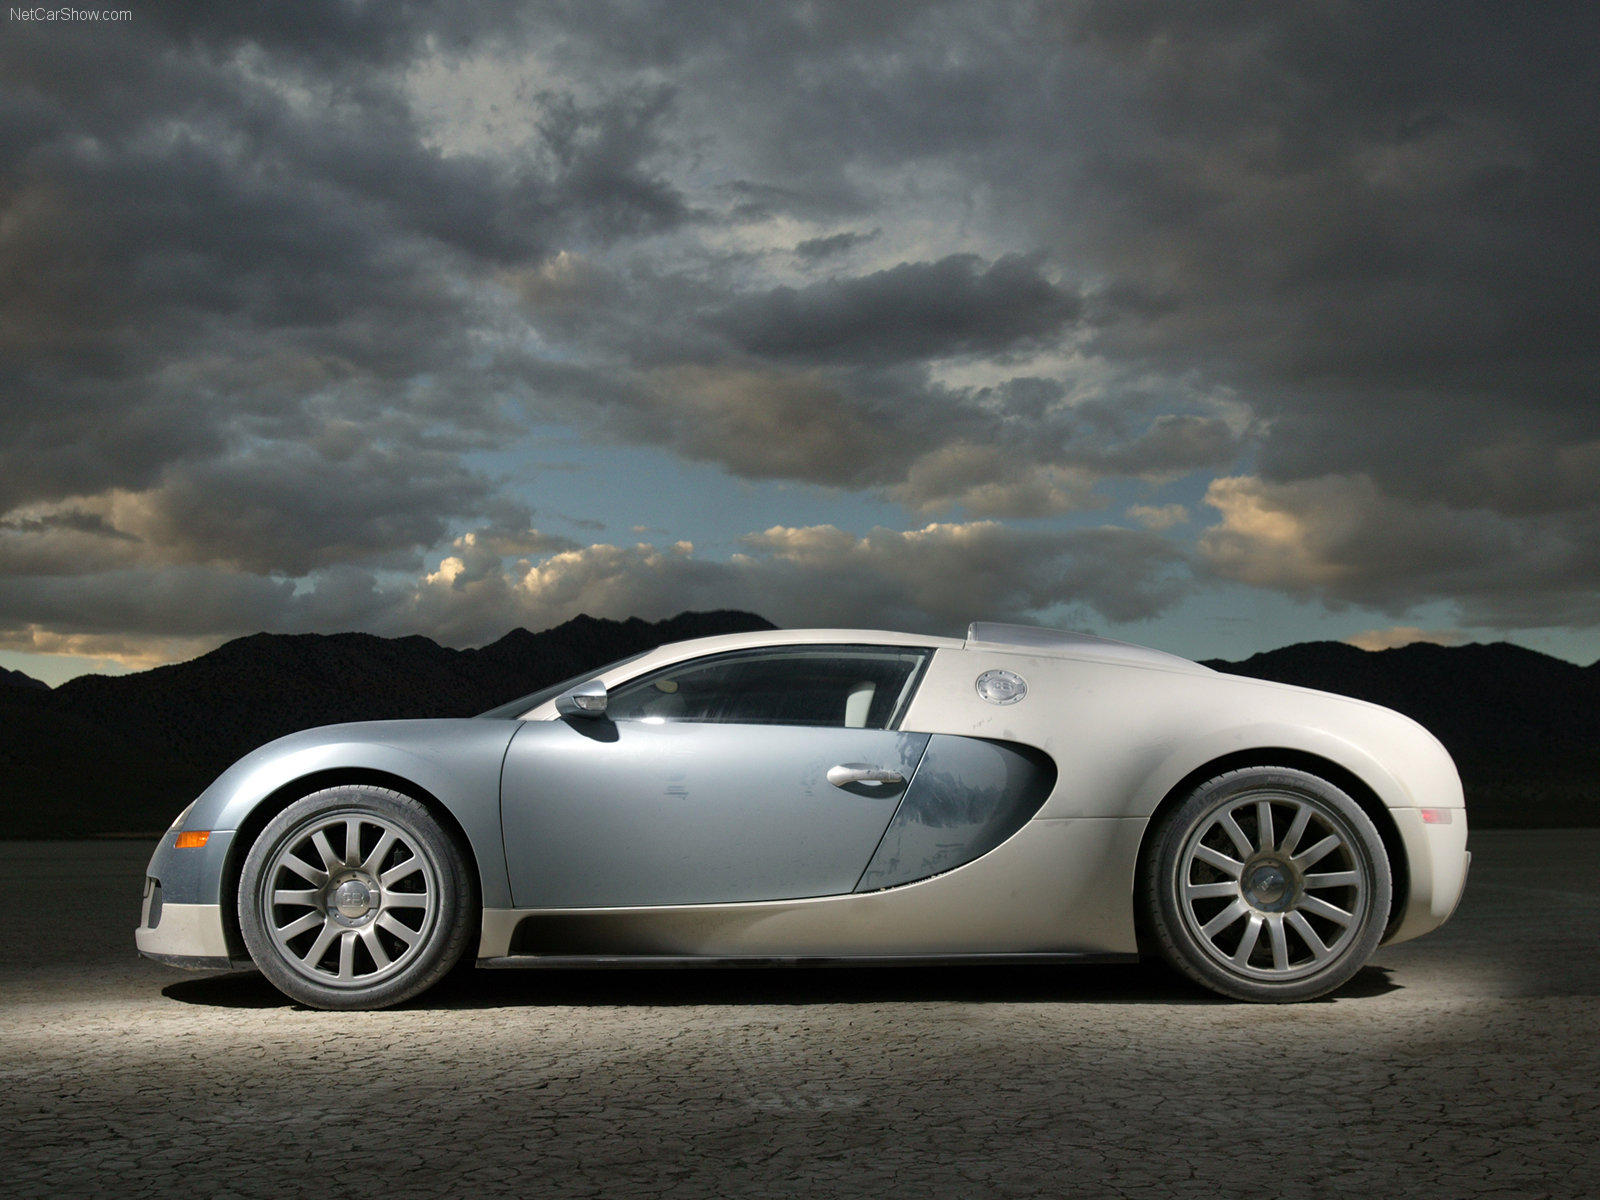 Bugatti Veyron Hd Wallpapers Hd Wallpapers